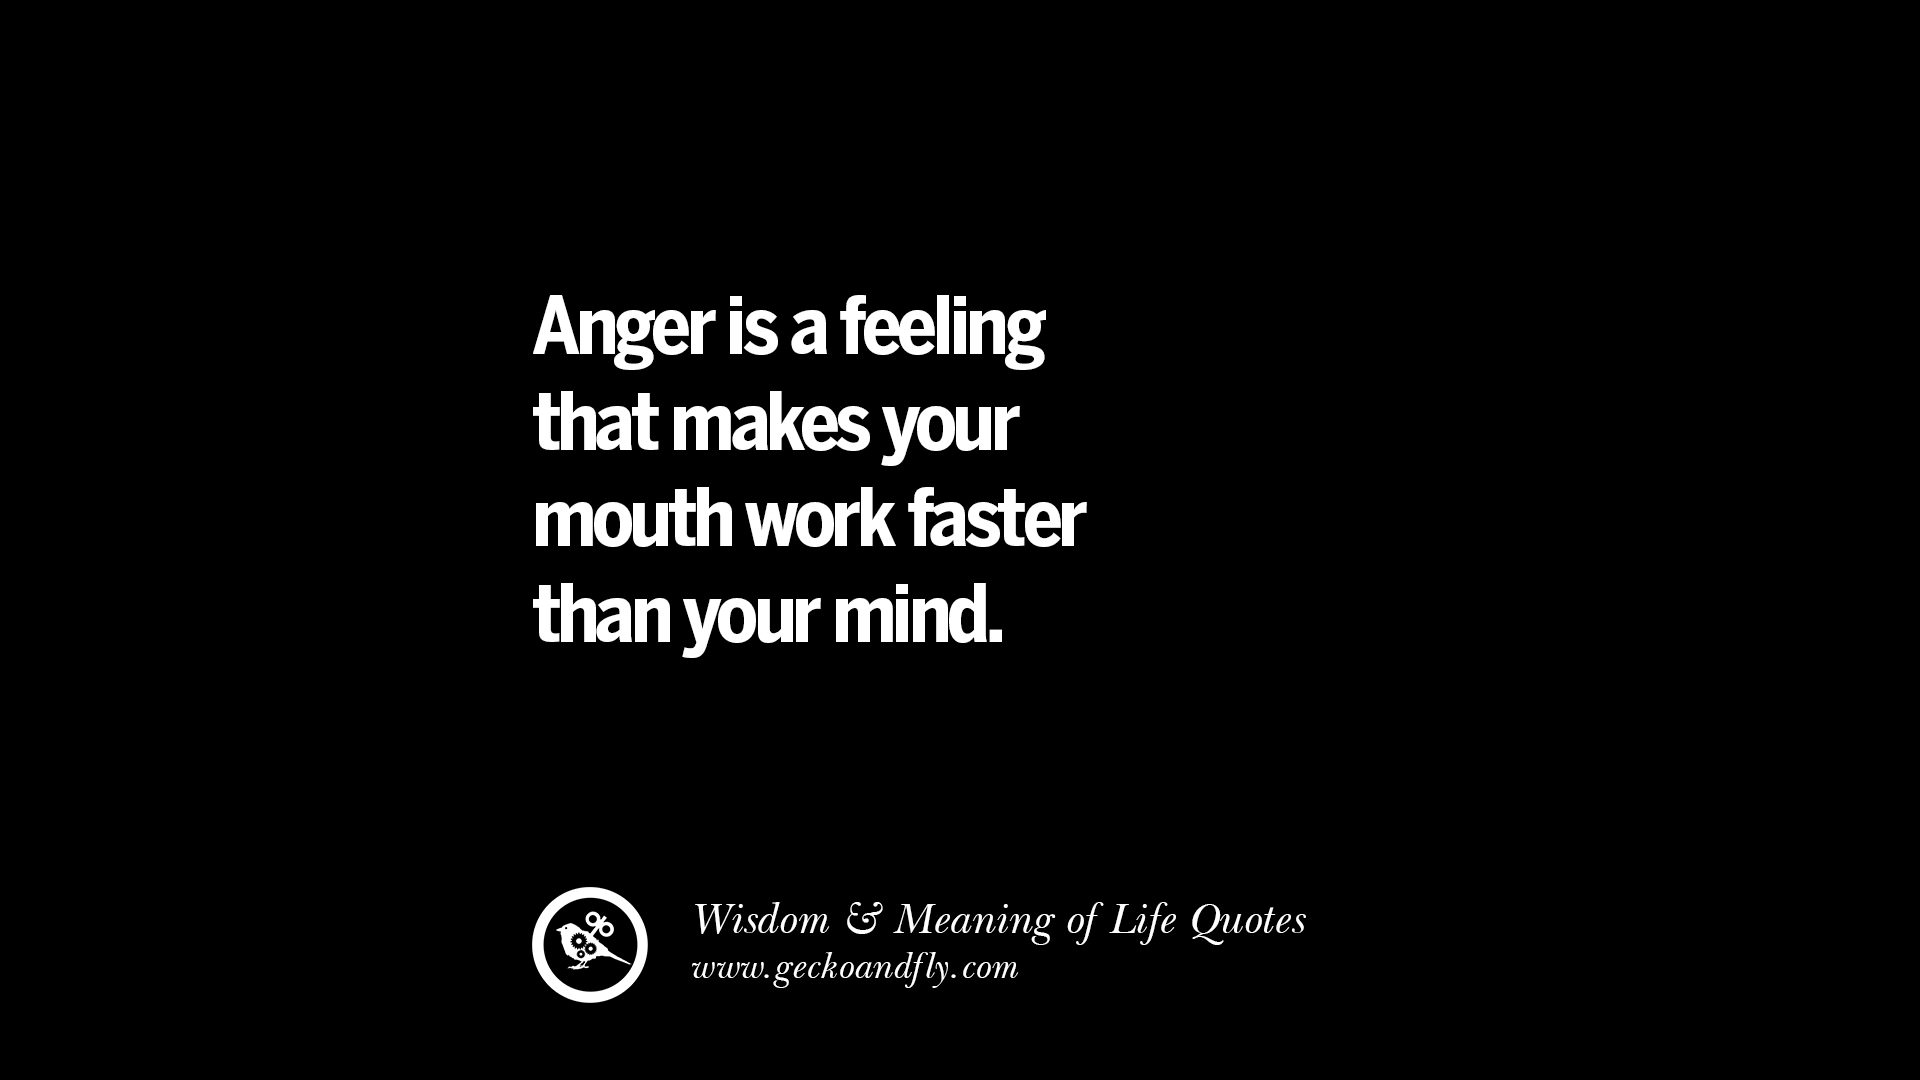 Short Wise Sayings : that makes your mouth work faster than your mind. funny wise quotes ...